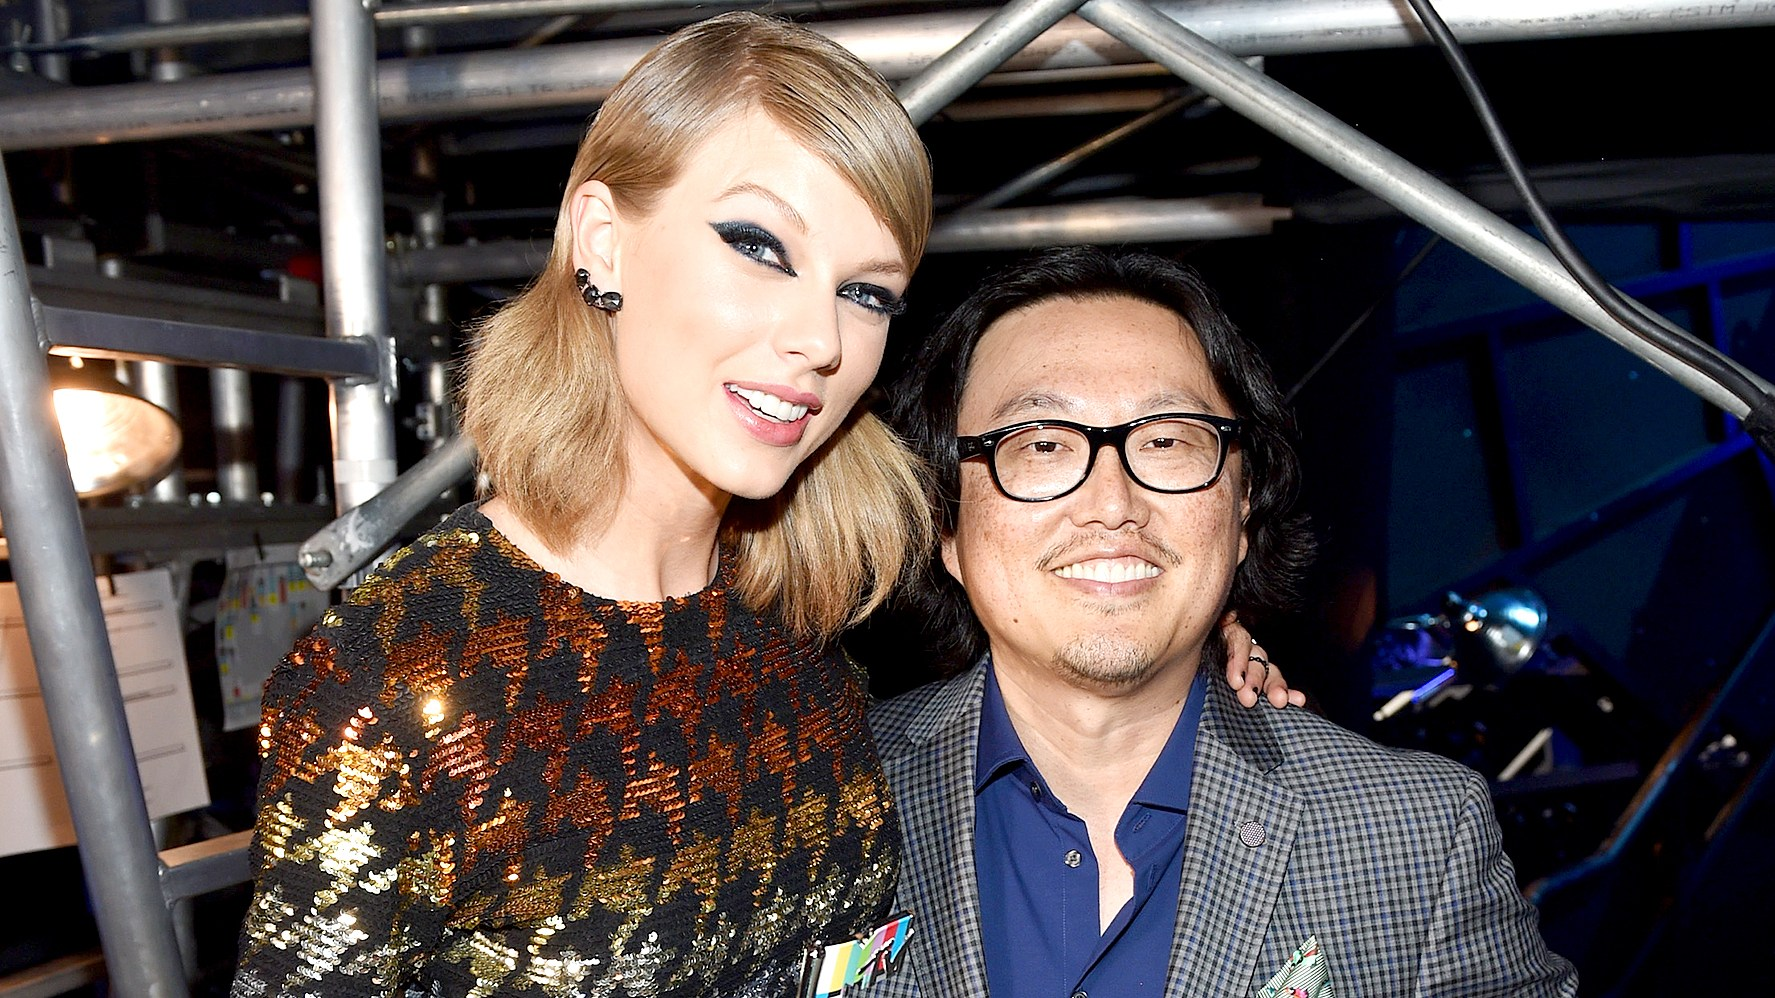 Taylor Swift and director Joseph Kahn pose backstage during the 2015 MTV Video Music Awards at Microsoft Theater on August 30, 2015 in Los Angeles, California.